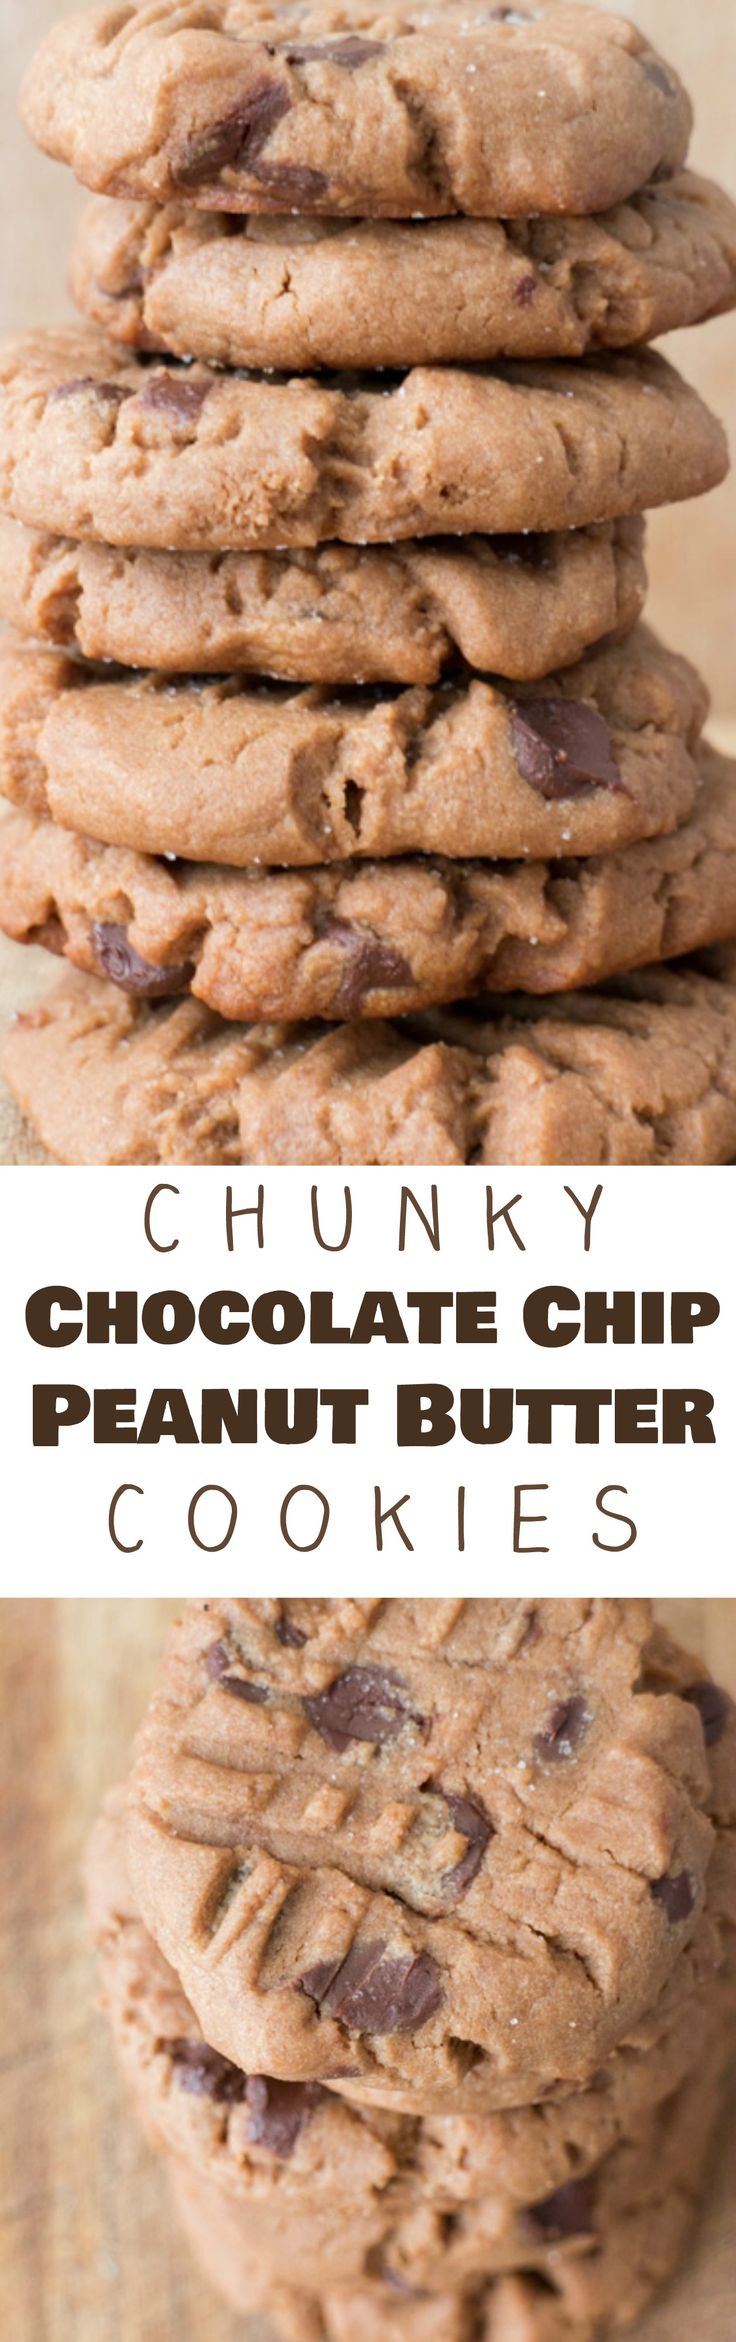 """Chunky Chocolate Chip Peanut Butter Cookies that everyone is going to love! This easy from scratch cookie recipe is one of my most requested and is considered """"the best"""" at bake sales! These homemad (Peanut Butter Chocolate Chip)"""